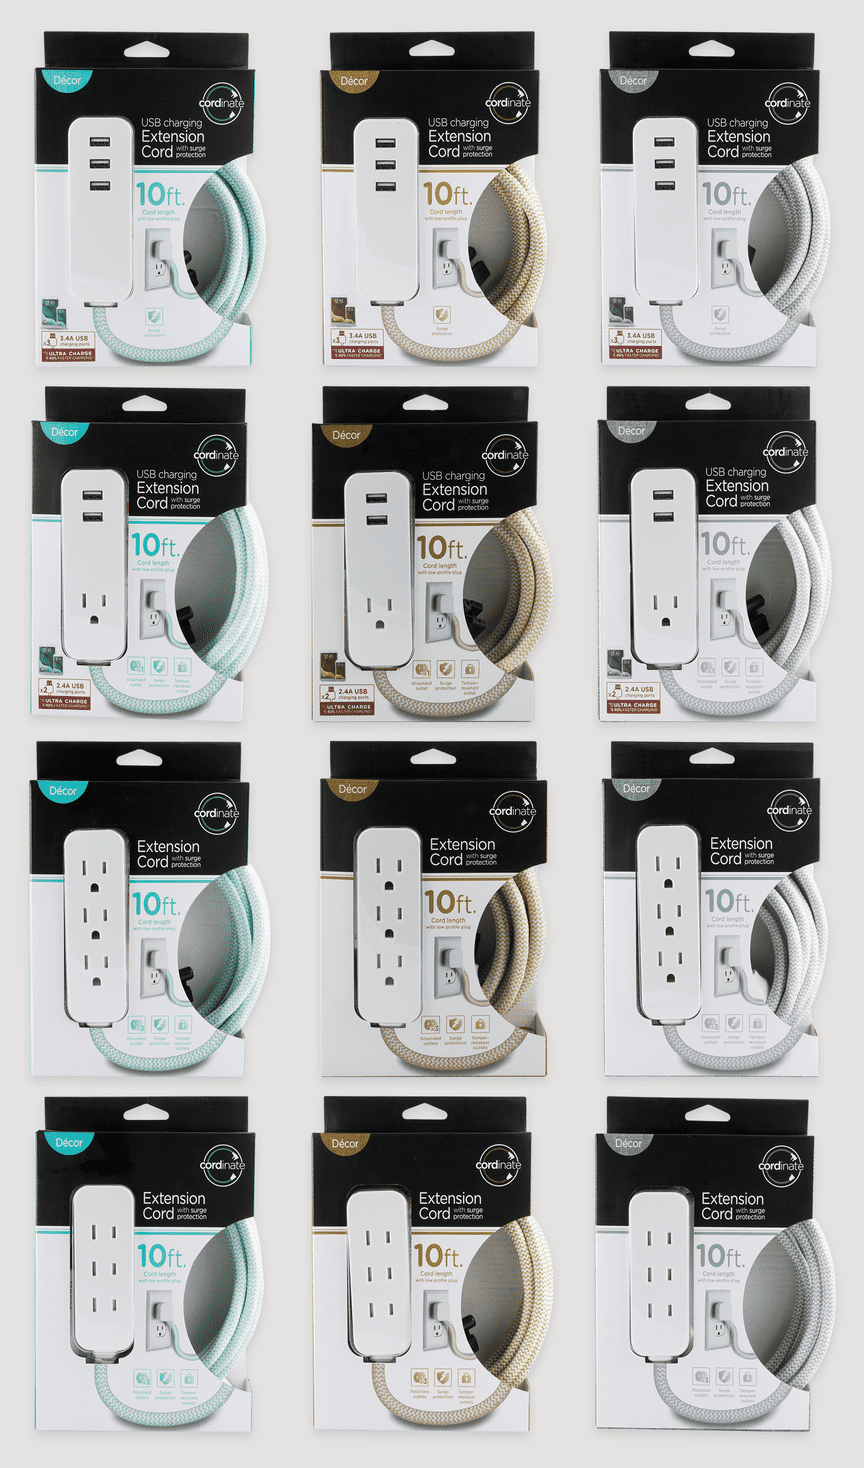 Three columns show straight-on images of the USB extension cord packaging in blue, brown, and gray colors and with different features.